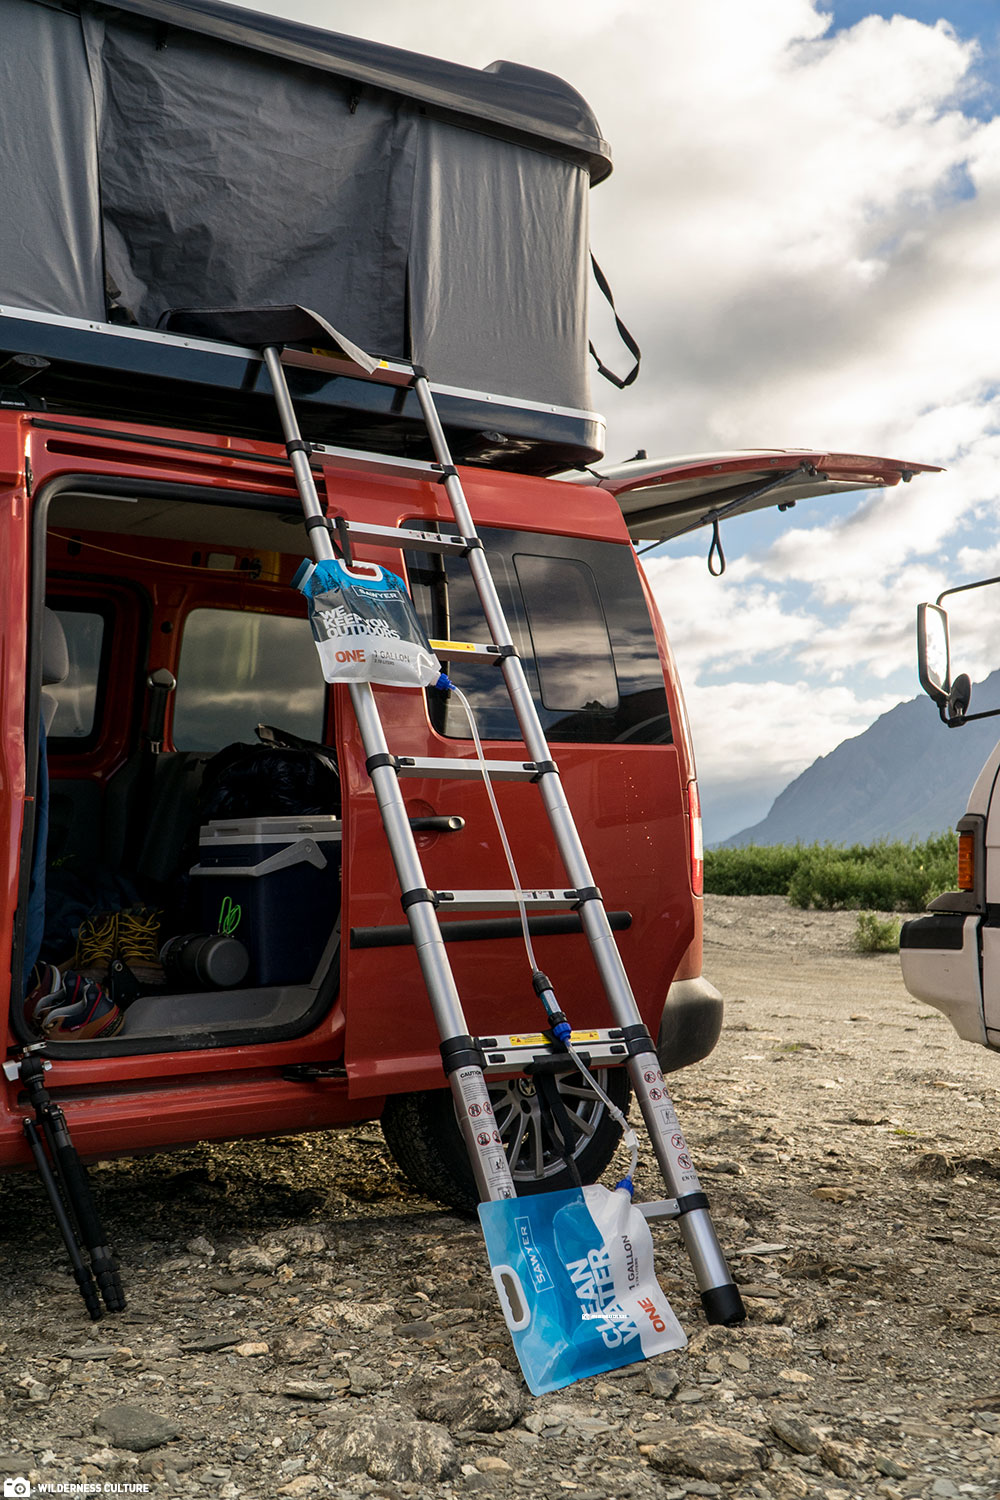 A Dual Bladder Sawyer Gravity Water Filtration System on the Ladder of an Adventure Van